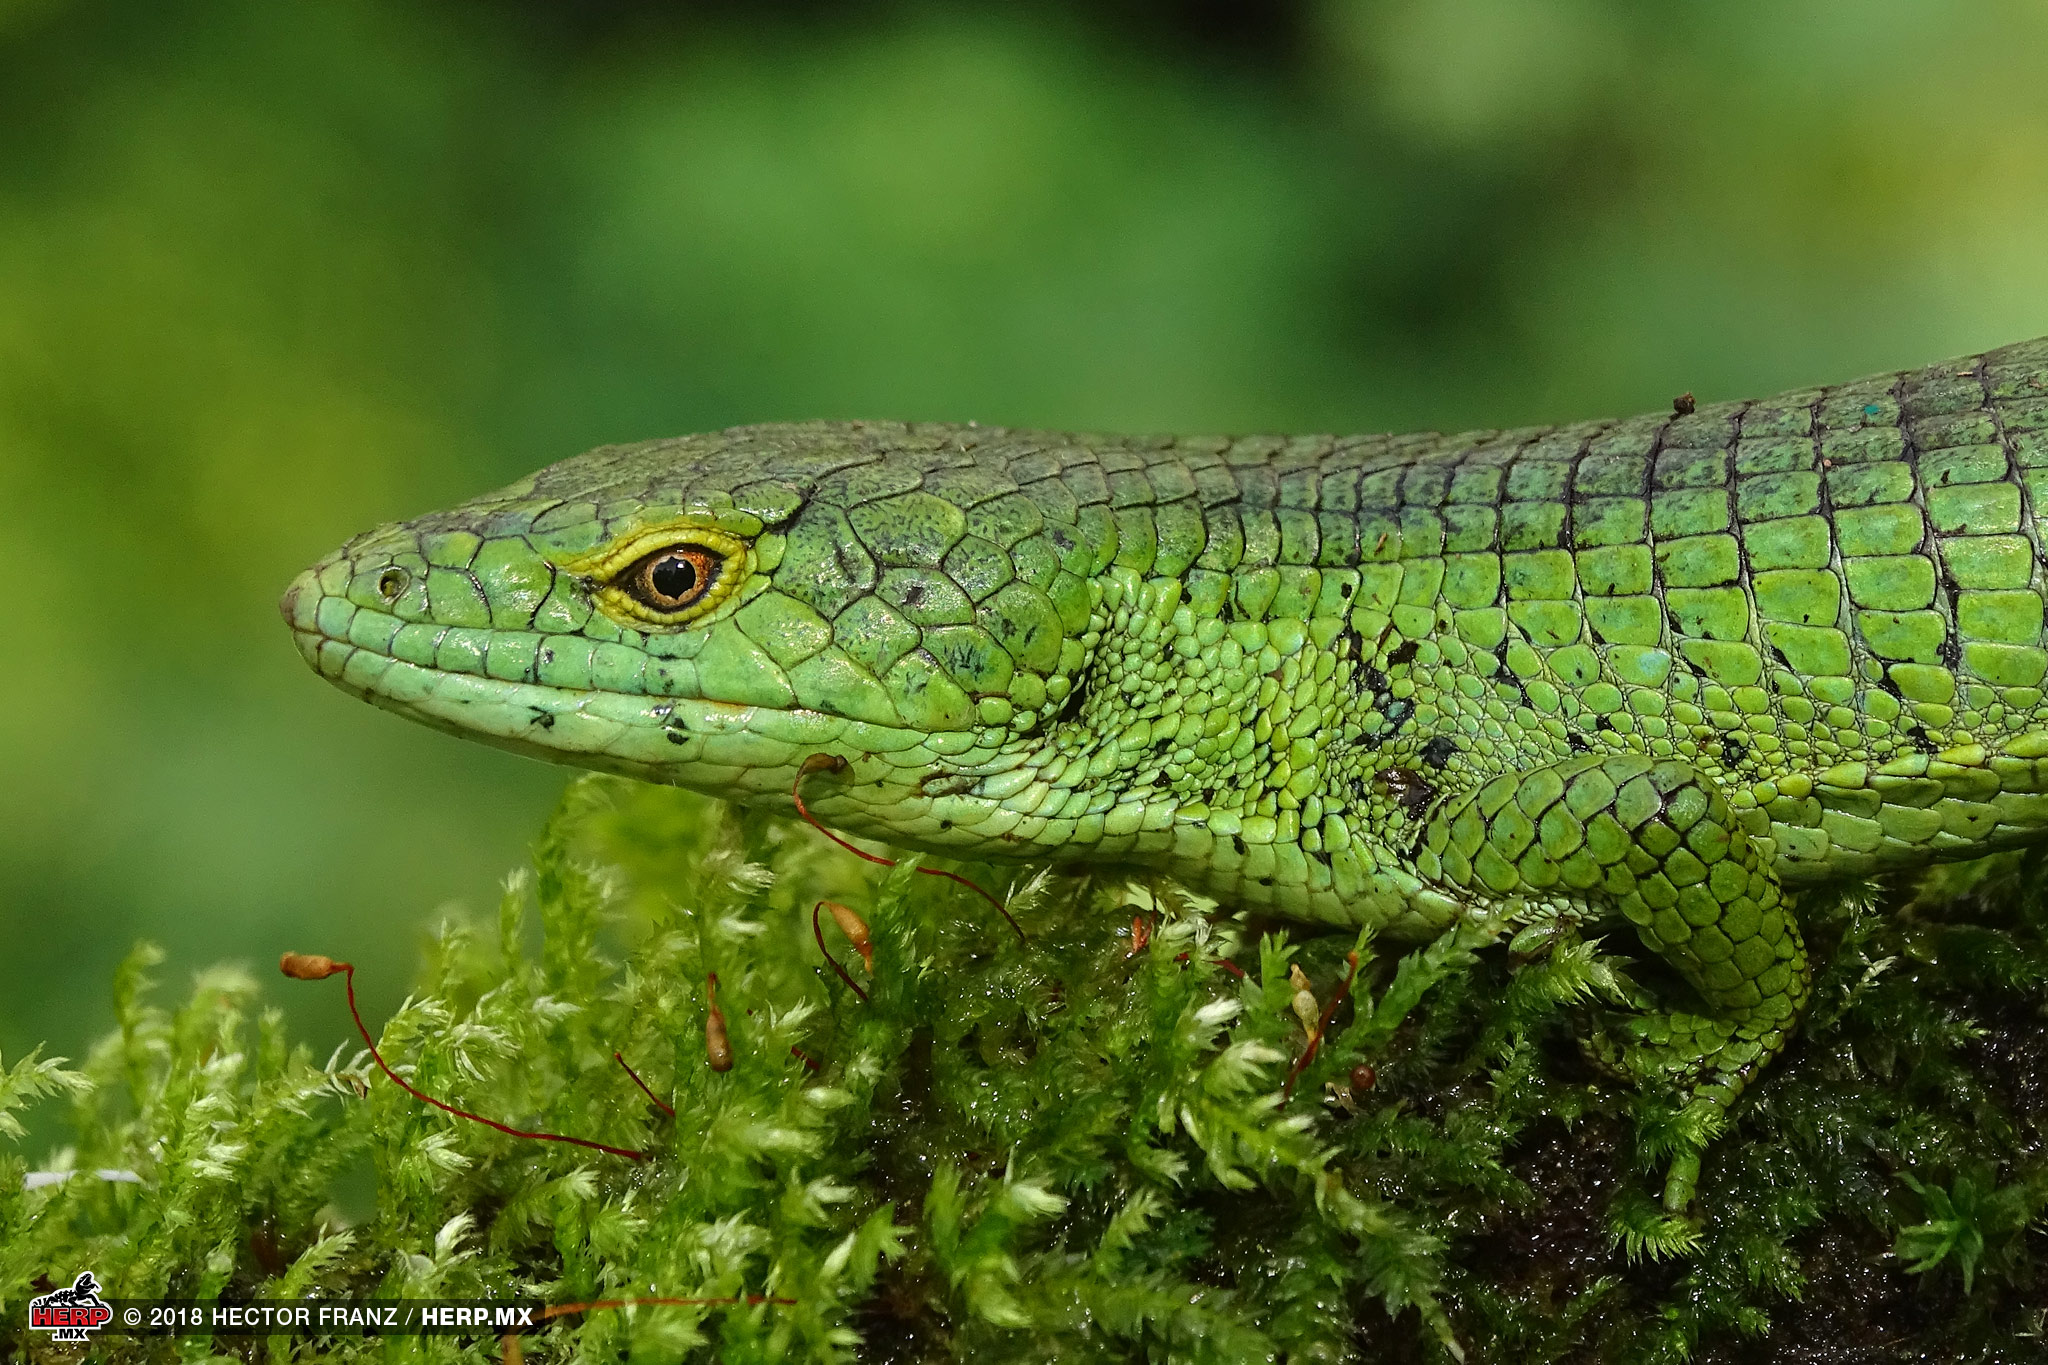 An adult Matuda's Arboreal Alligator Lizard (Abronia matudai) from Chiapas © Hector Franz  / HERP.MX